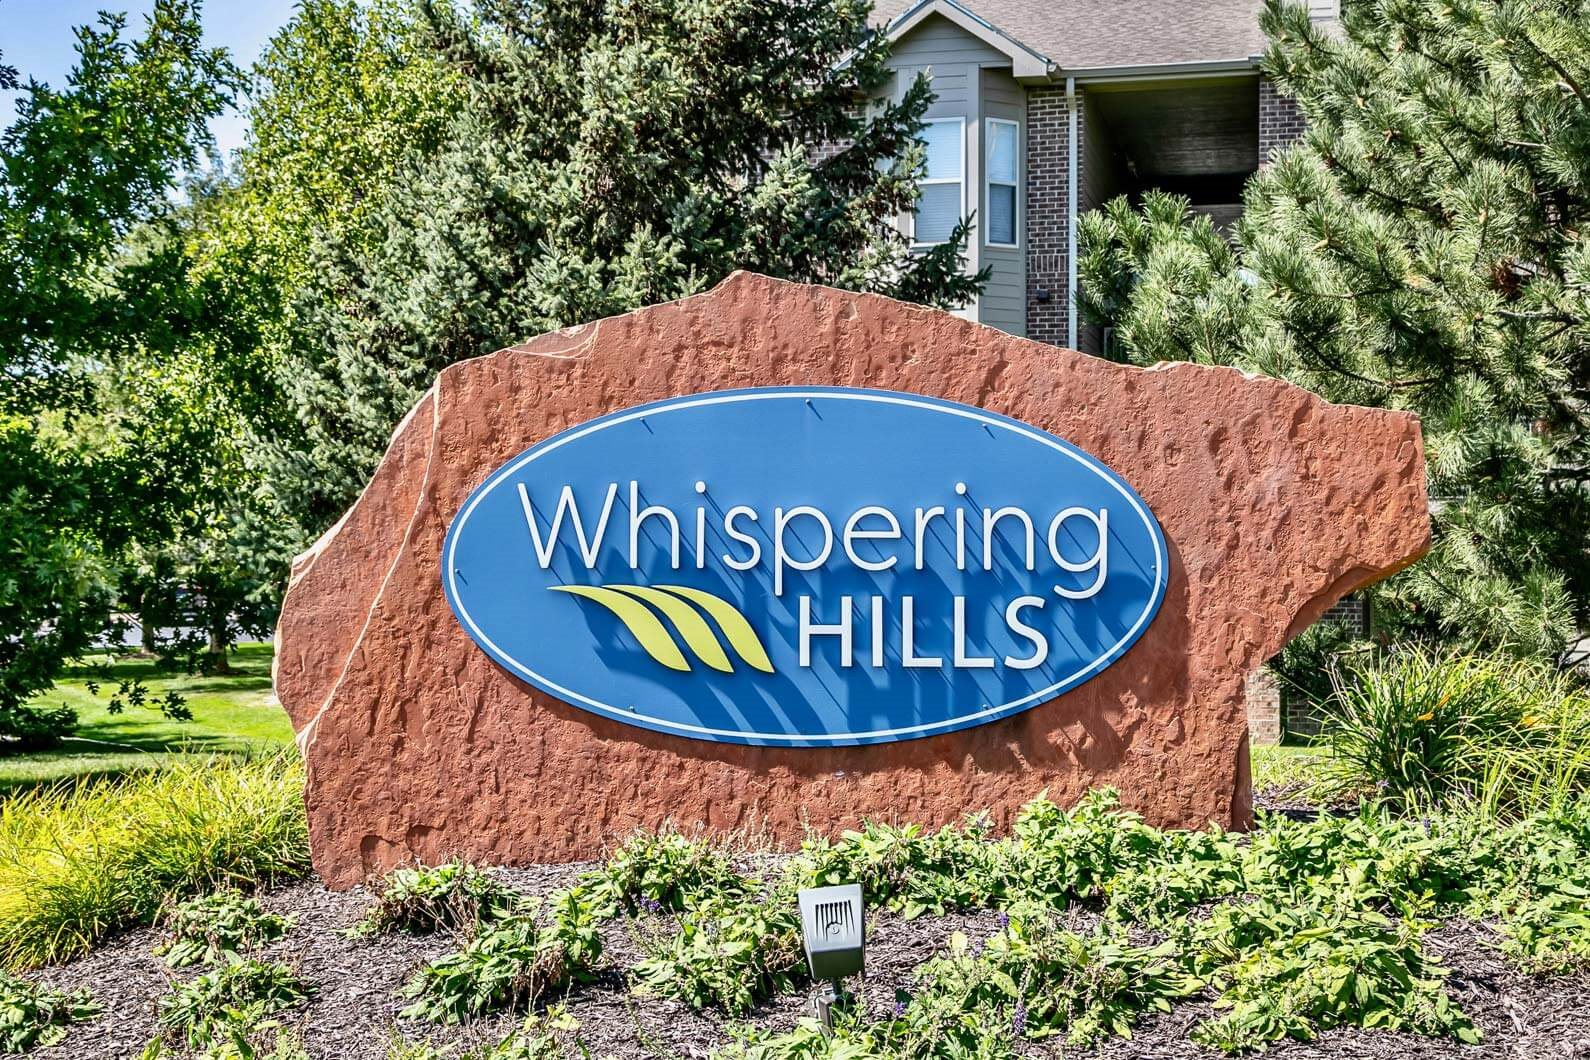 Property signage at Whispering Hills Apartments in Omaha, NE